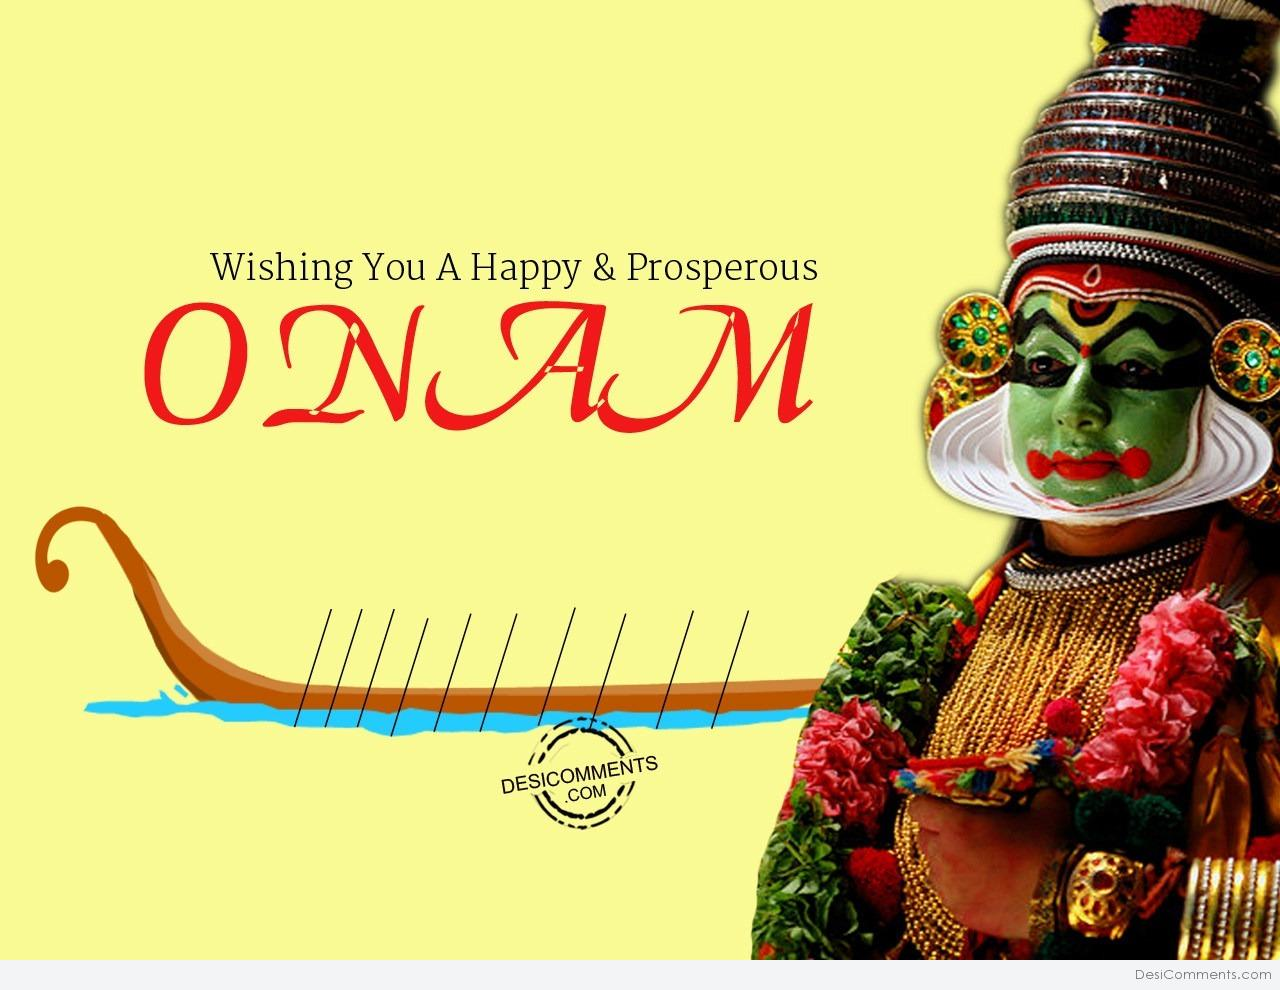 Onam pictures images graphics page 7 picture wishing you a happy onam kristyandbryce Image collections